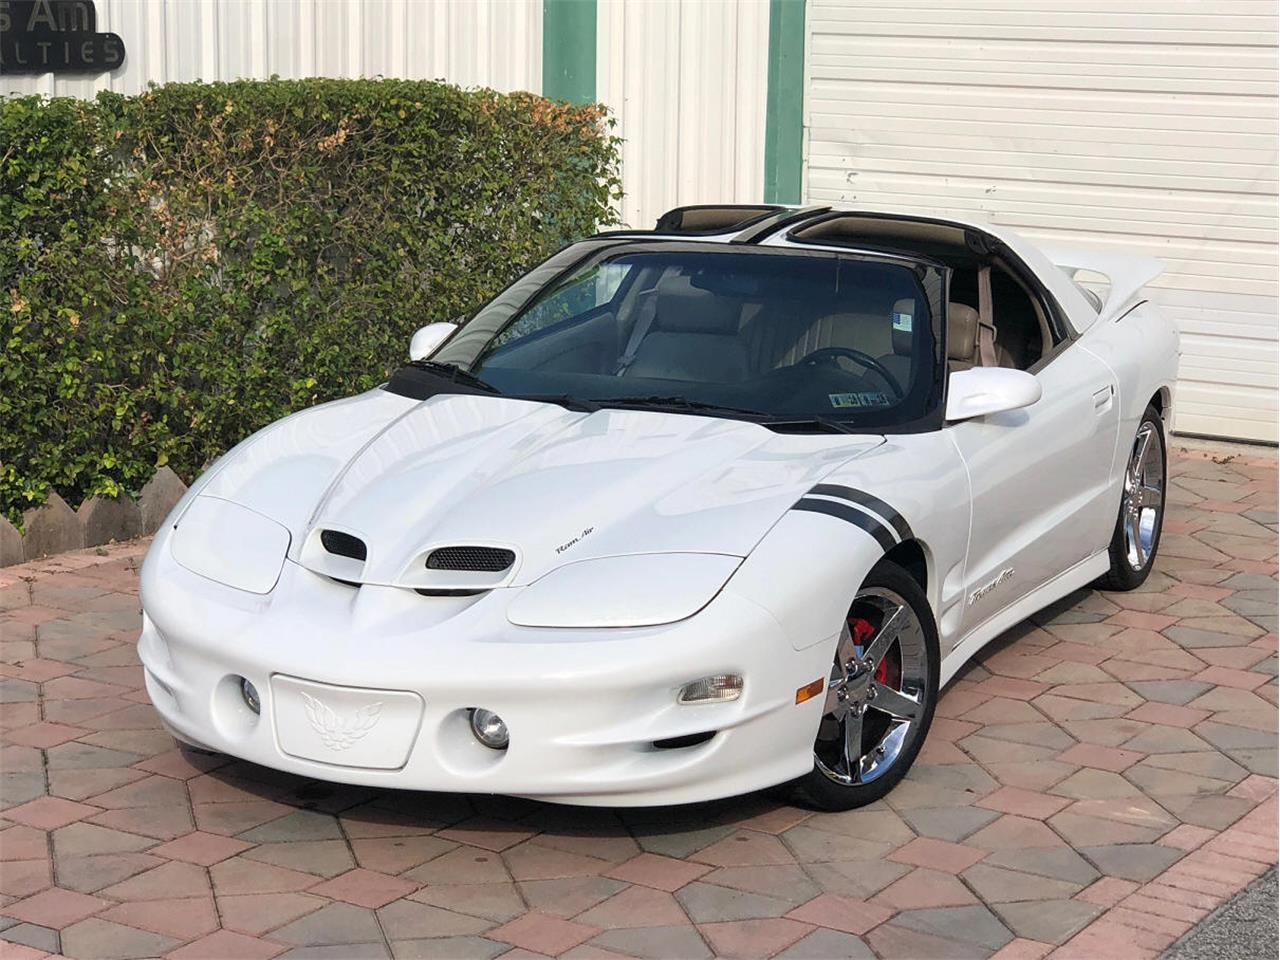 2000 Pontiac Firebird Lights The Future